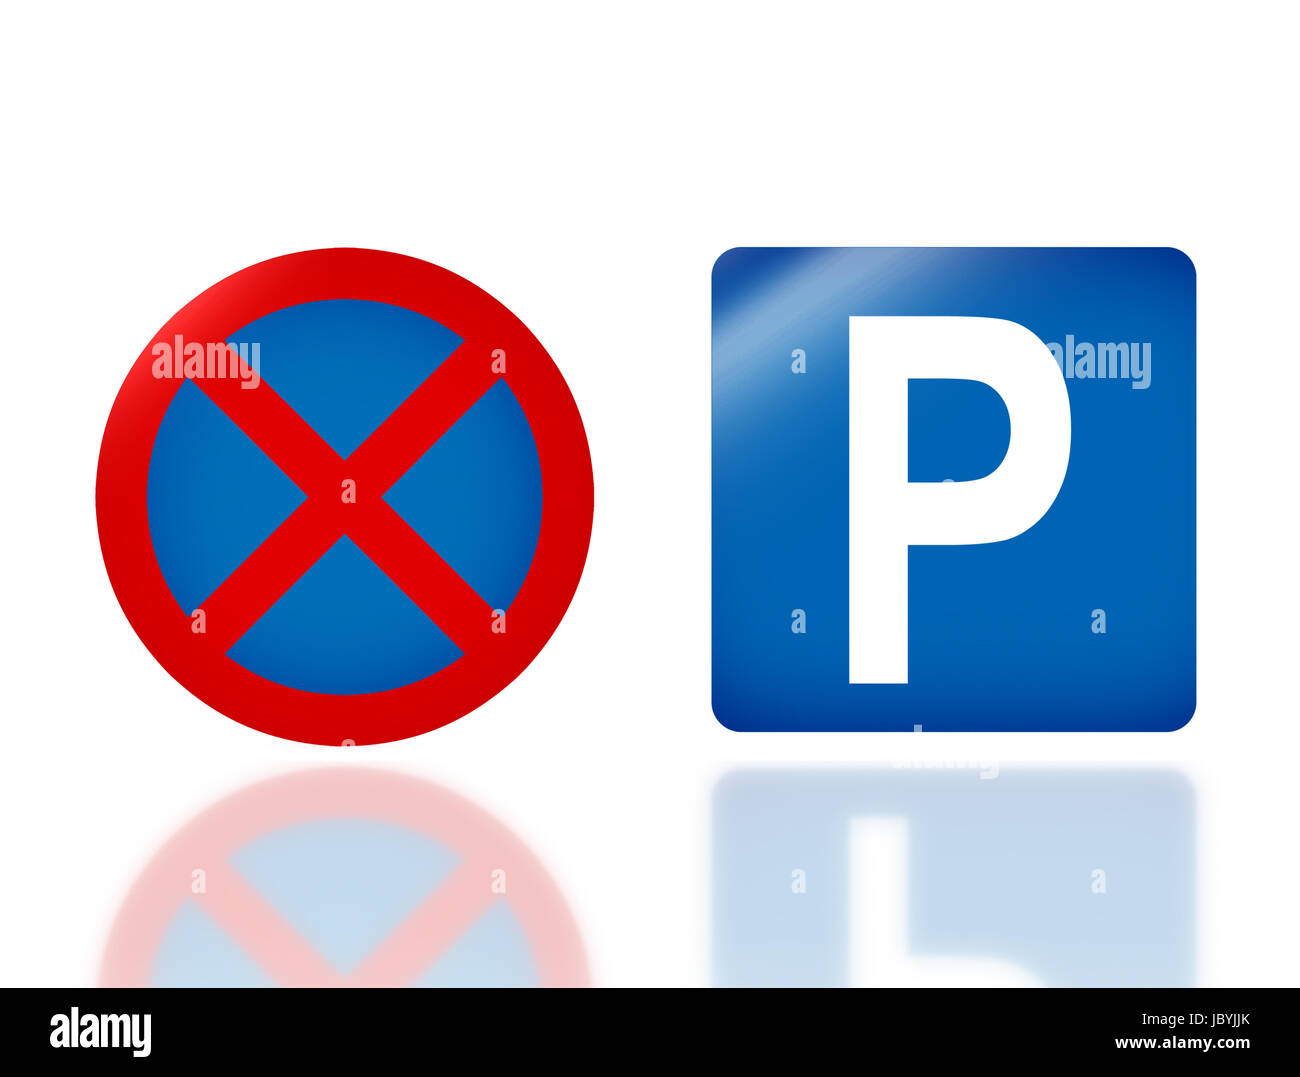 the notice of  no parking and parking traffic sign for transportation safety - Stock Image